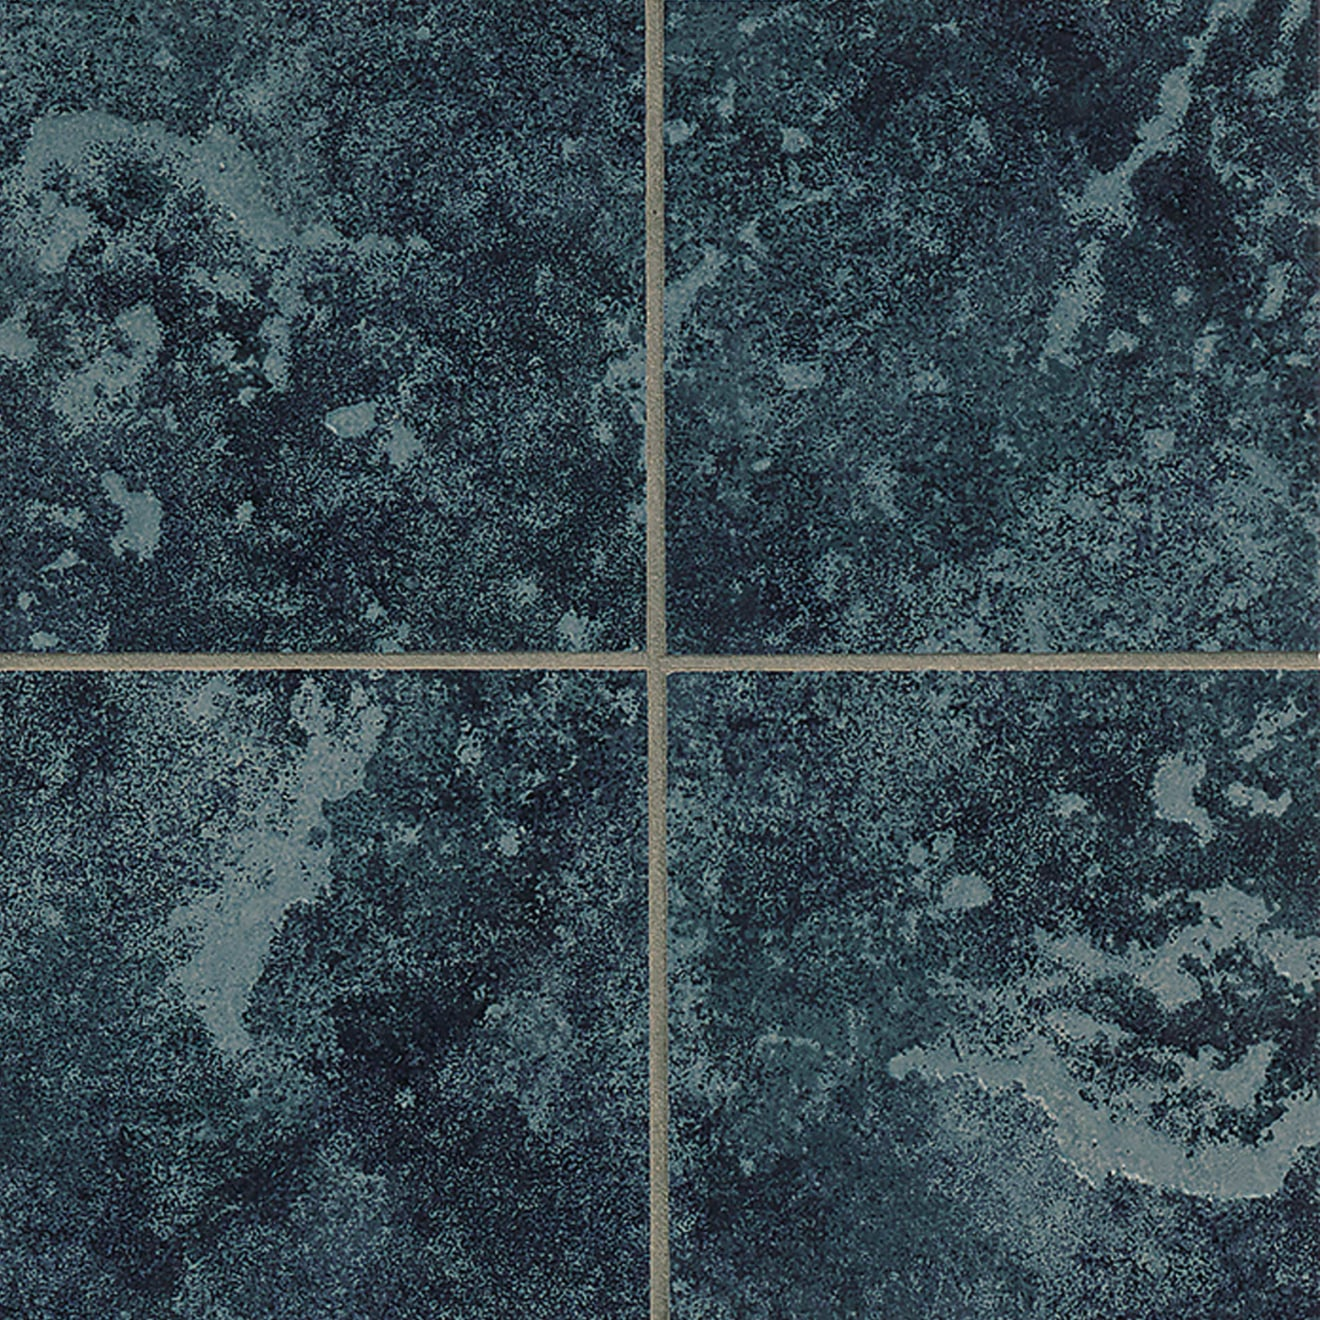 Pool Tile X X Floor And Wall Tile In Turquoise - 6x6 black floor tile